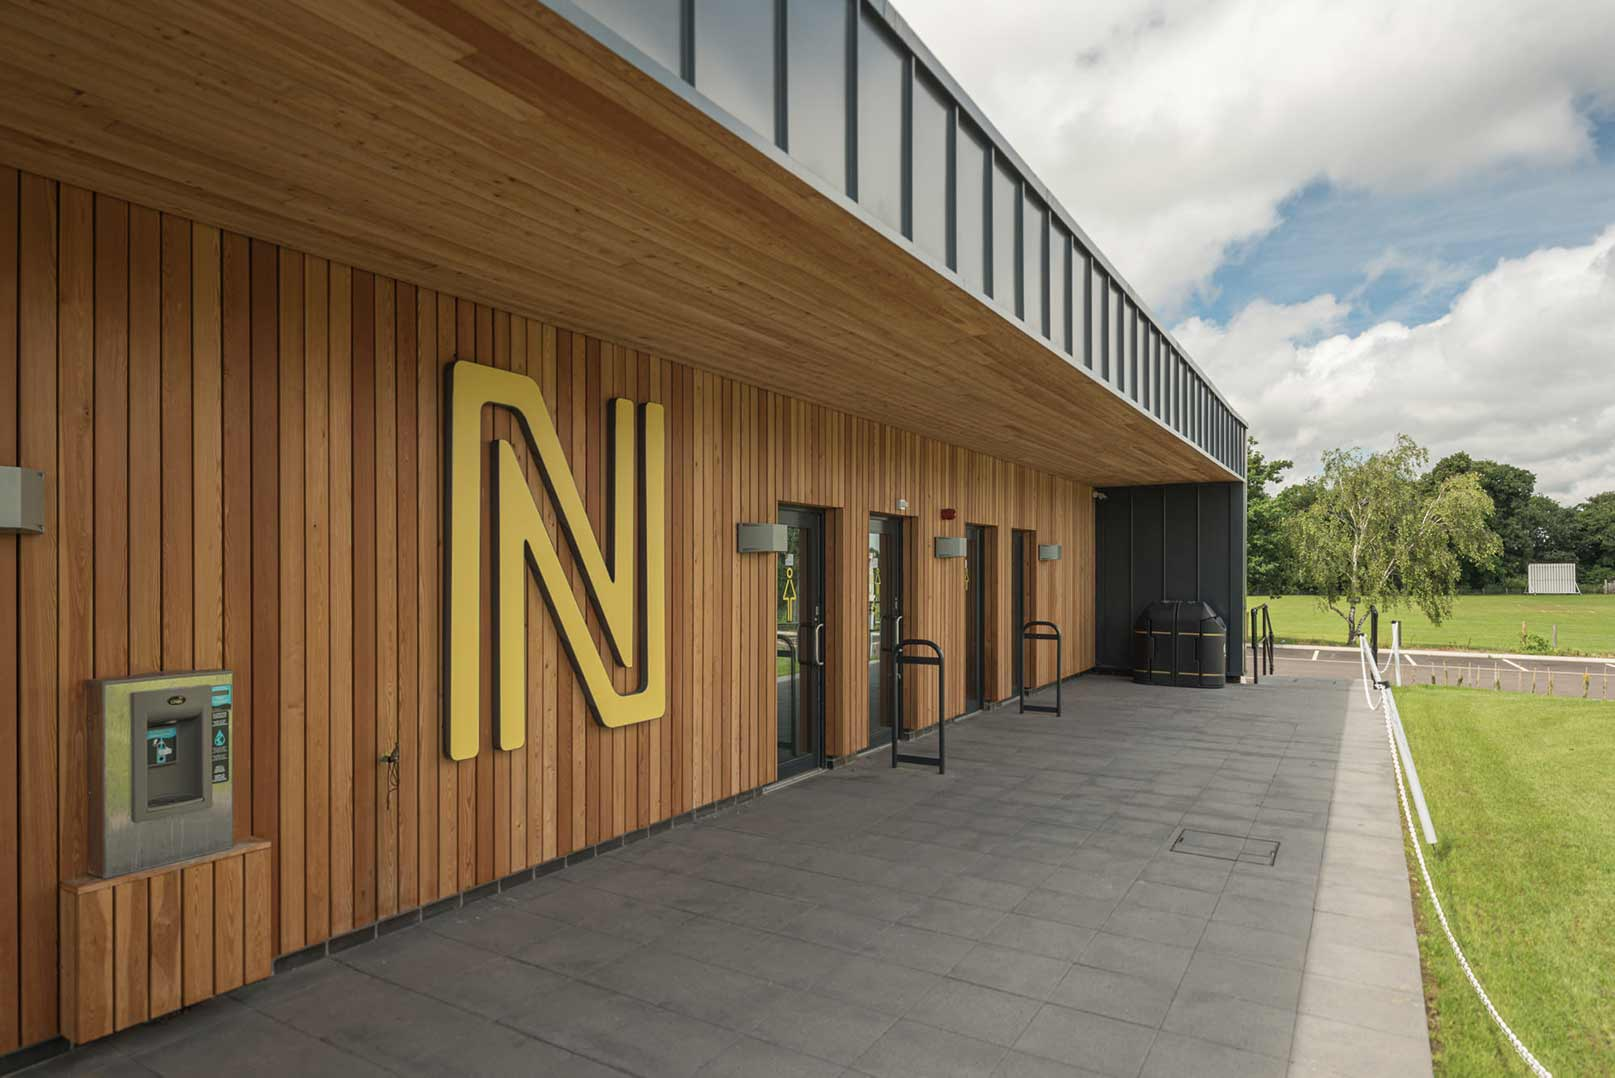 The changing room facade on the Hub building at The Nest